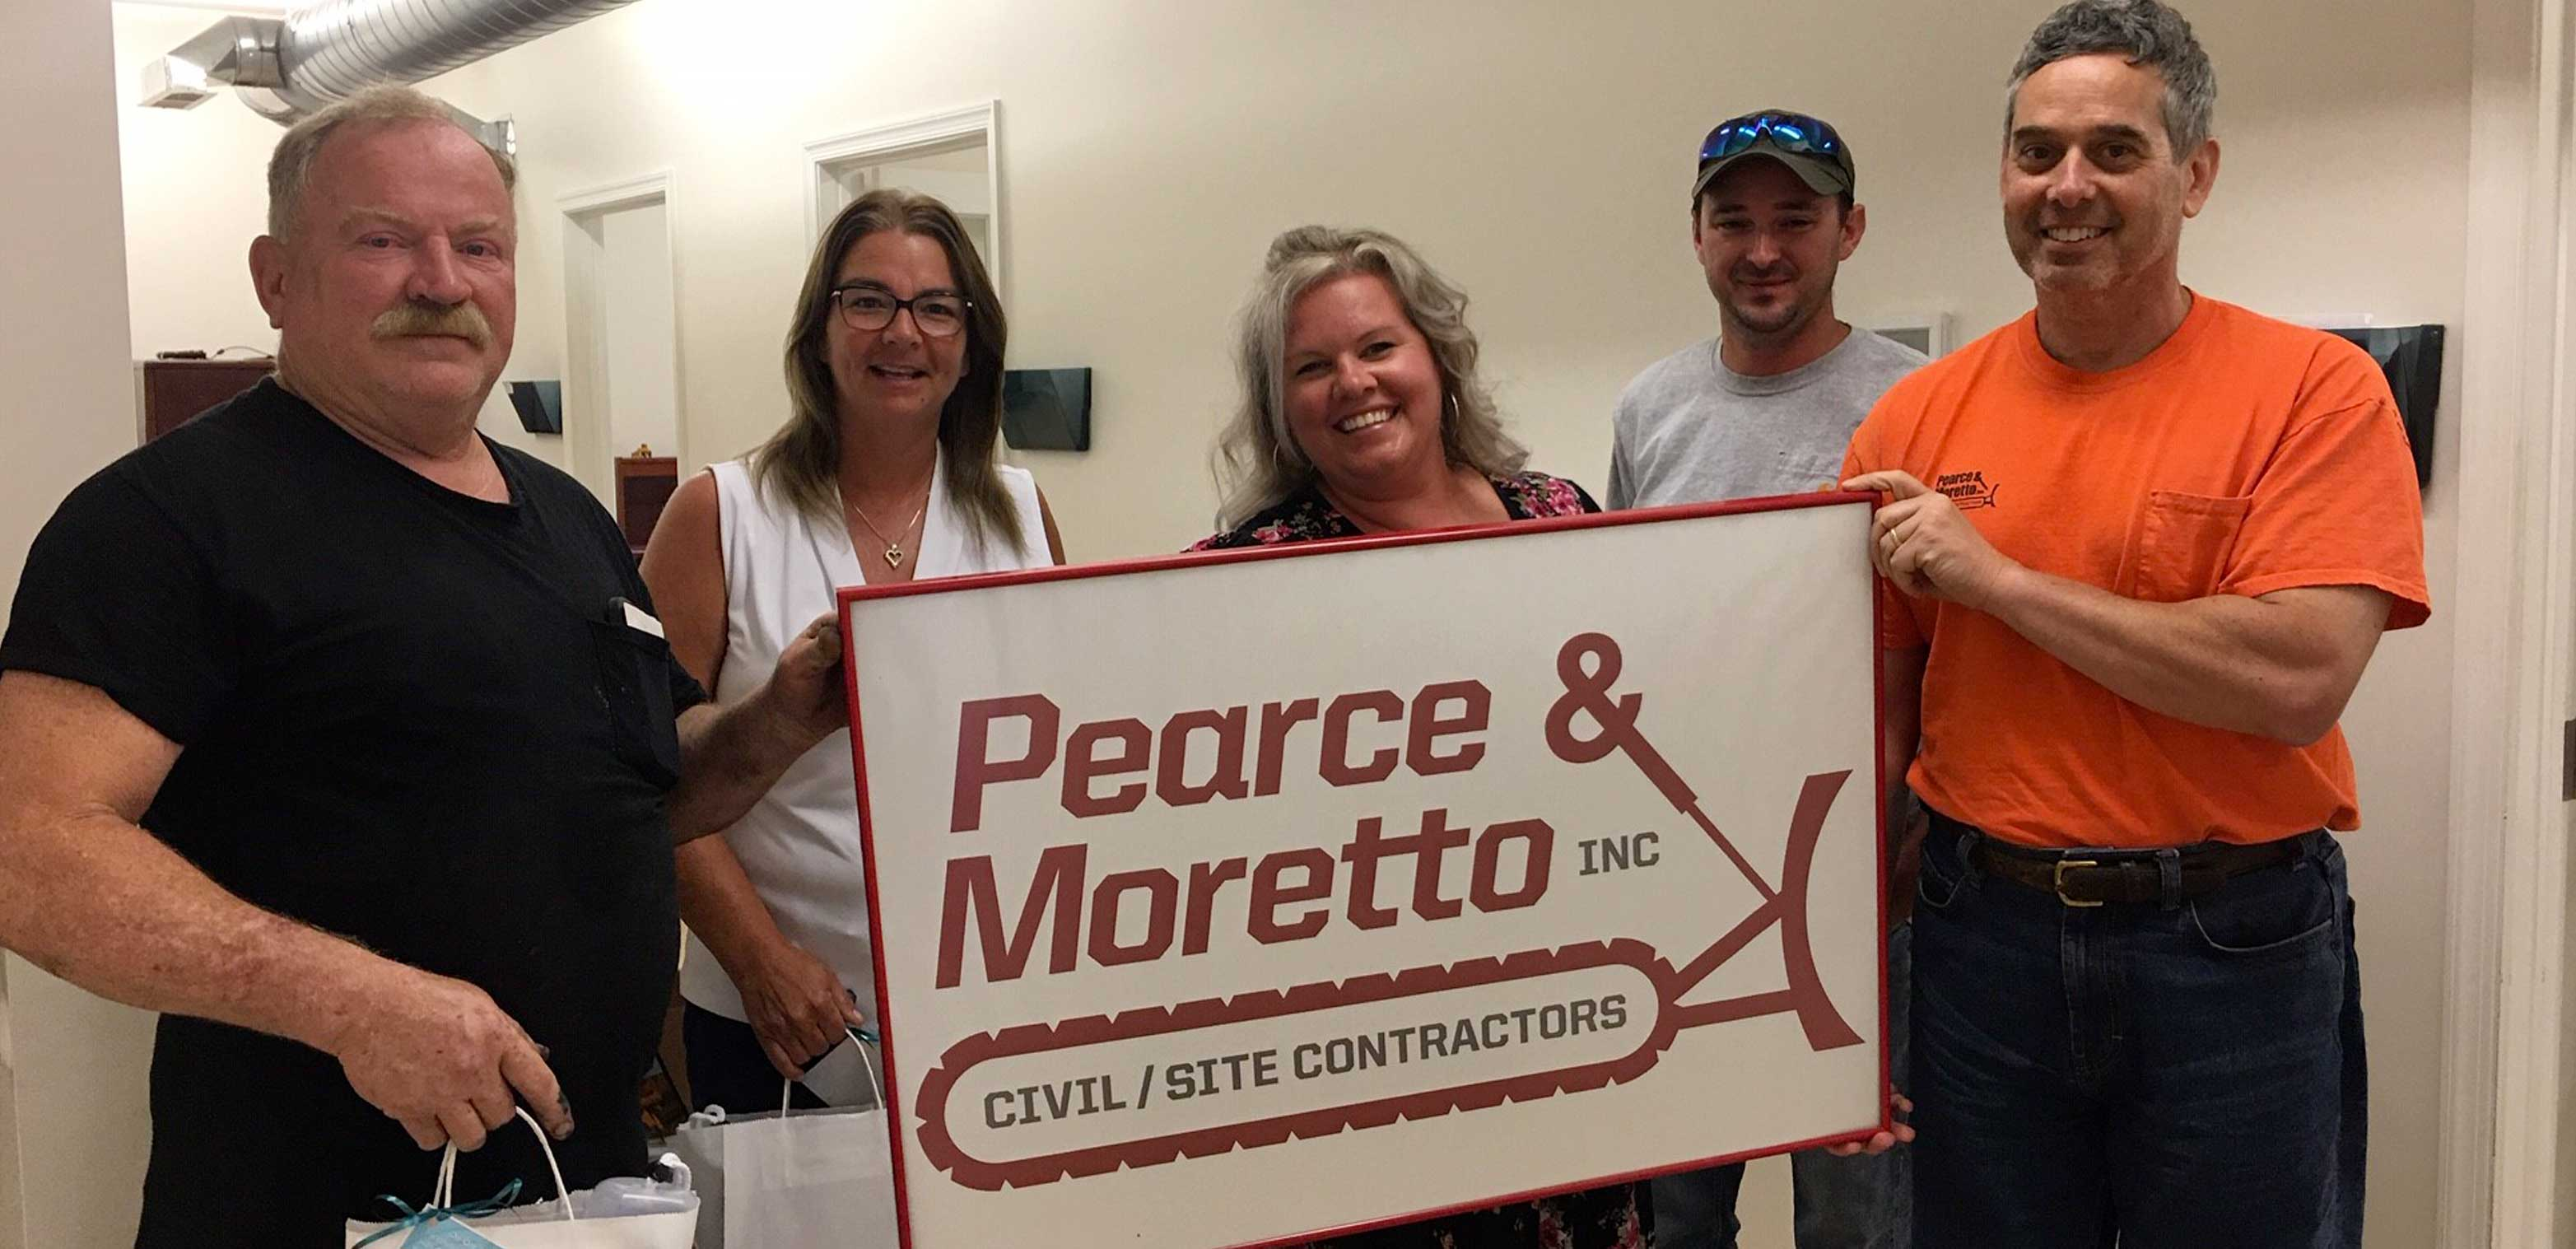 Ken, Marianne, Josh and Rob from Pearce & Moretto and Brandy from Del-One